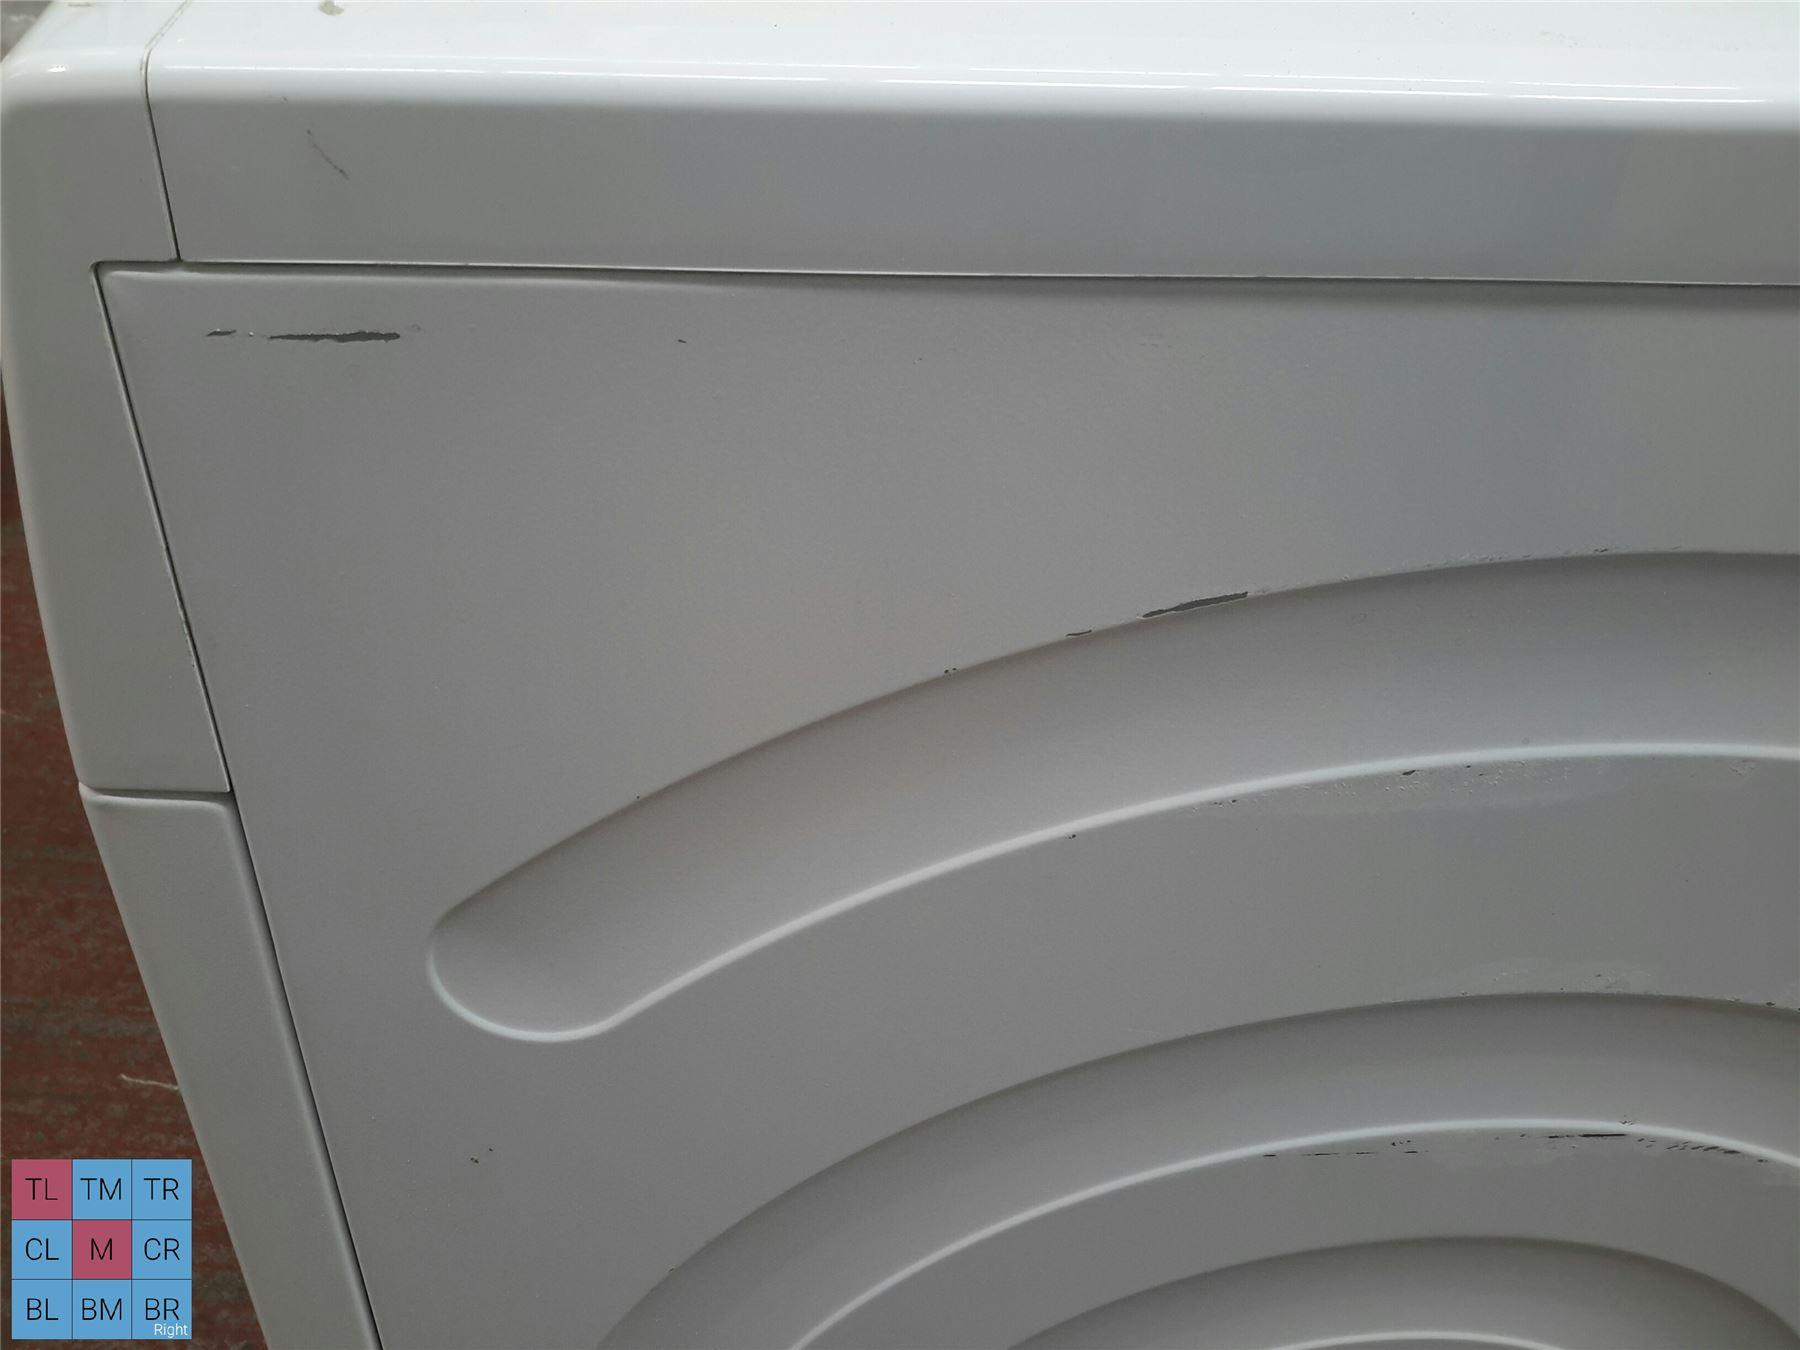 bosch classixx tumble dryer instructions